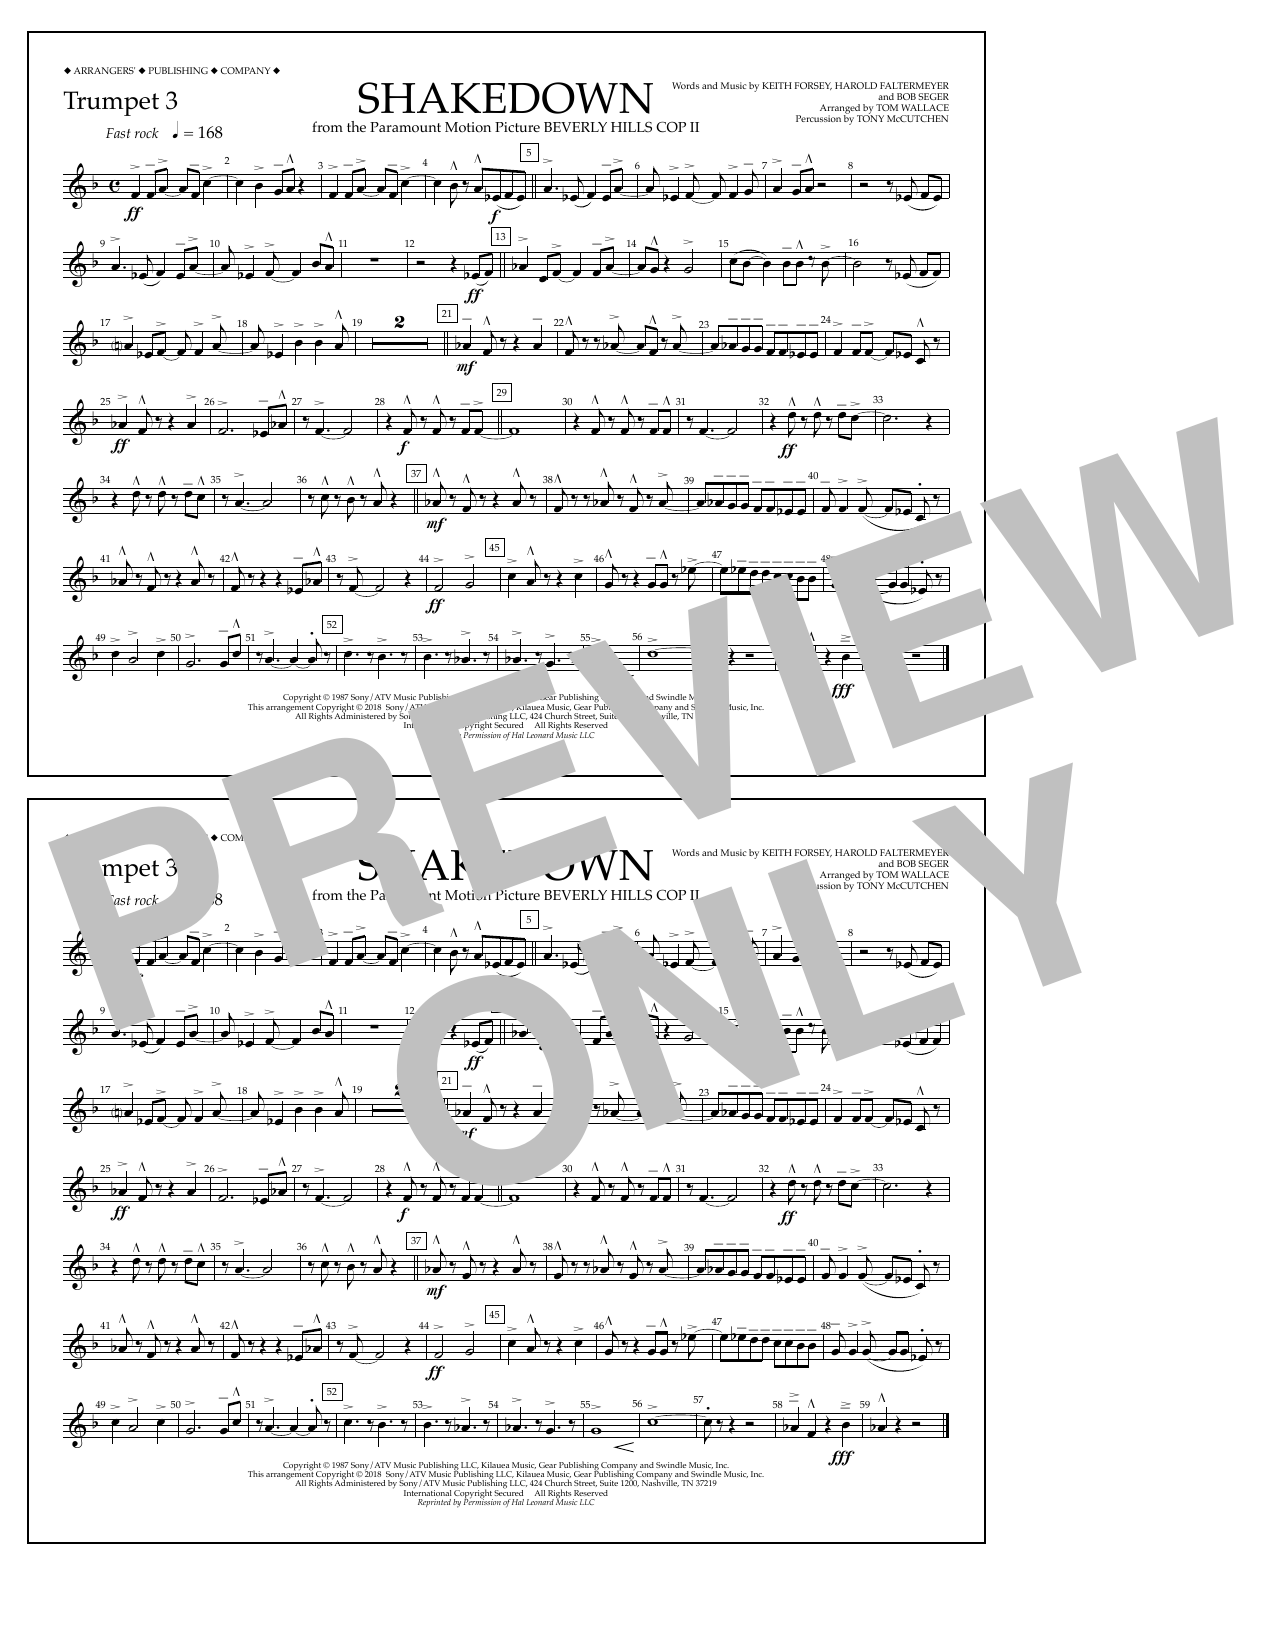 Tom Wallace Shakedown - Trumpet 3 sheet music notes and chords. Download Printable PDF.